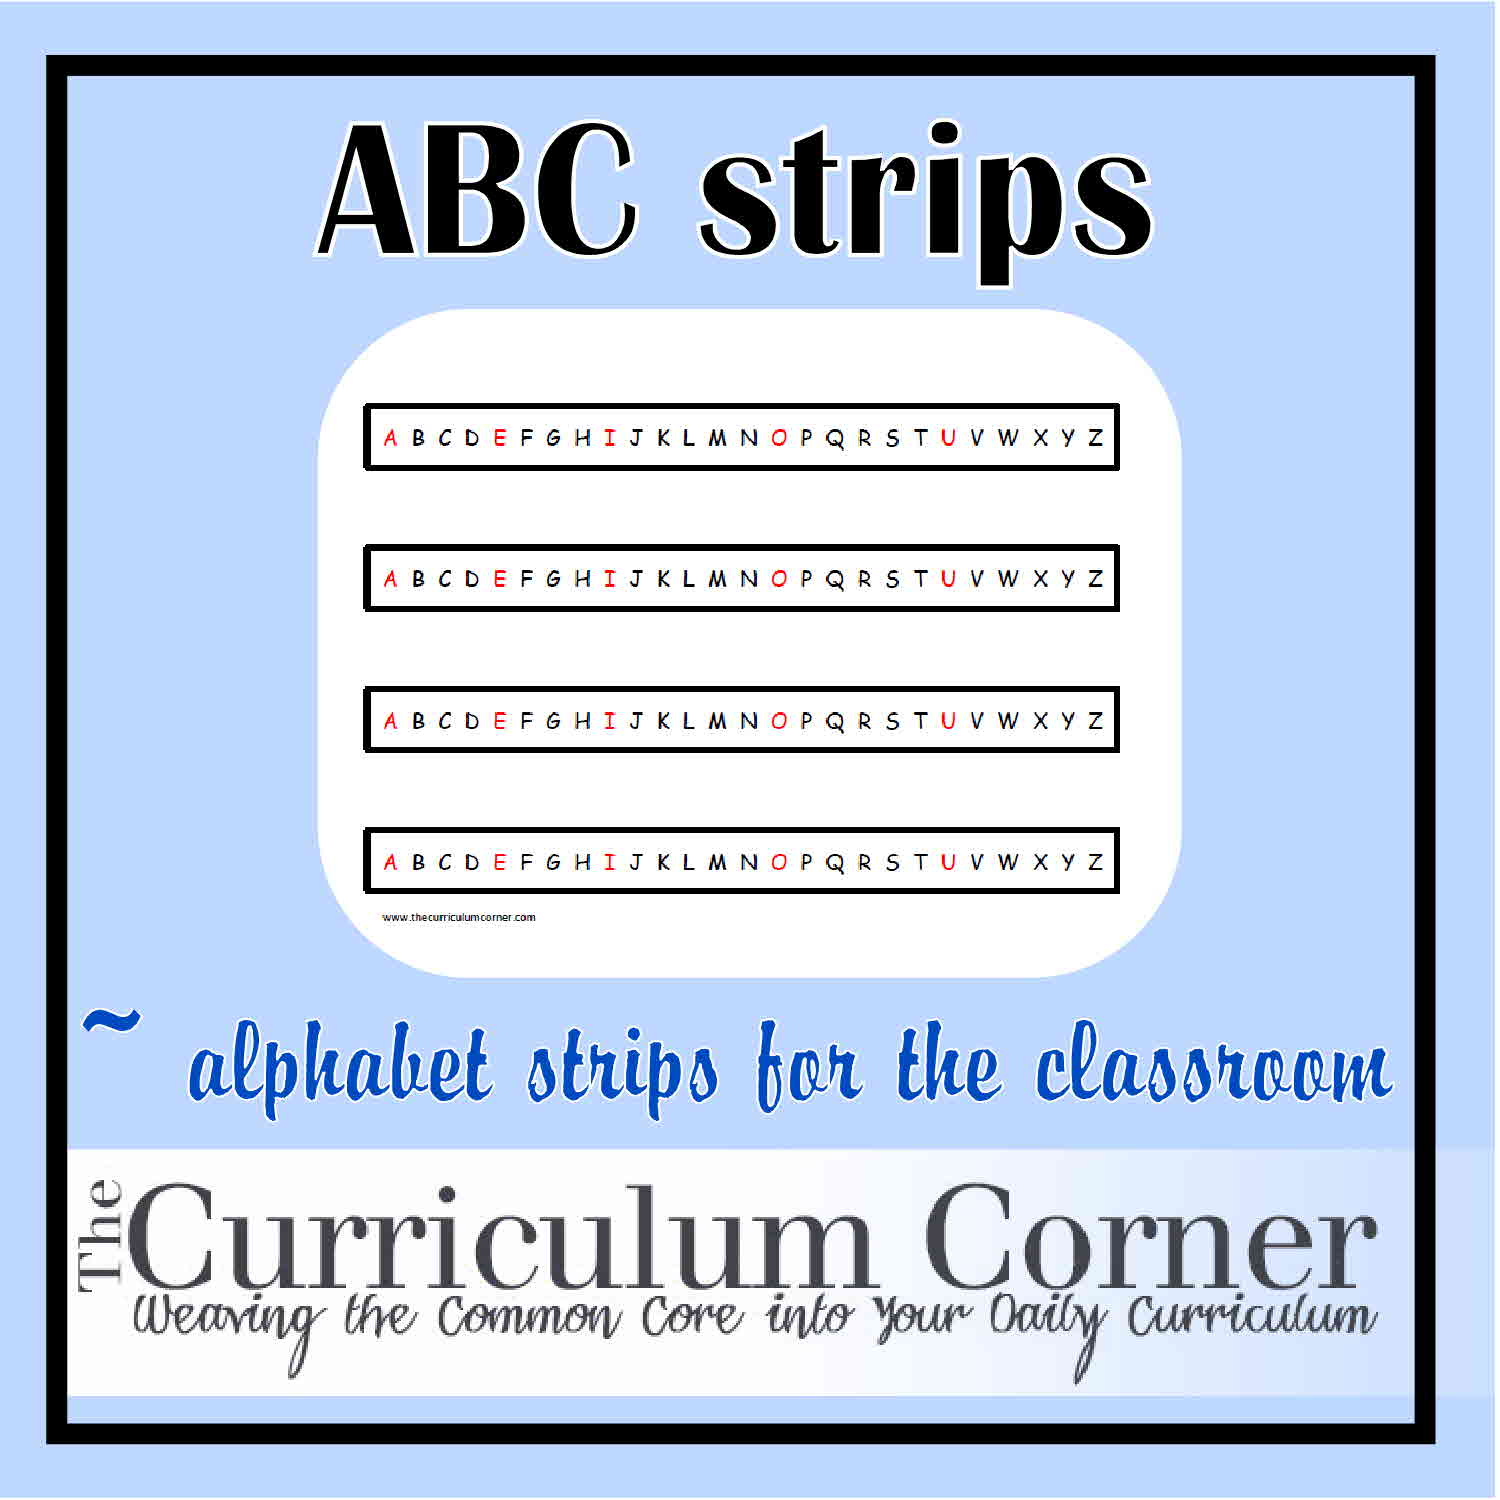 photograph regarding Alphabet Strip Printable identified as Alphabet Strips - The Curriculum Corner 123